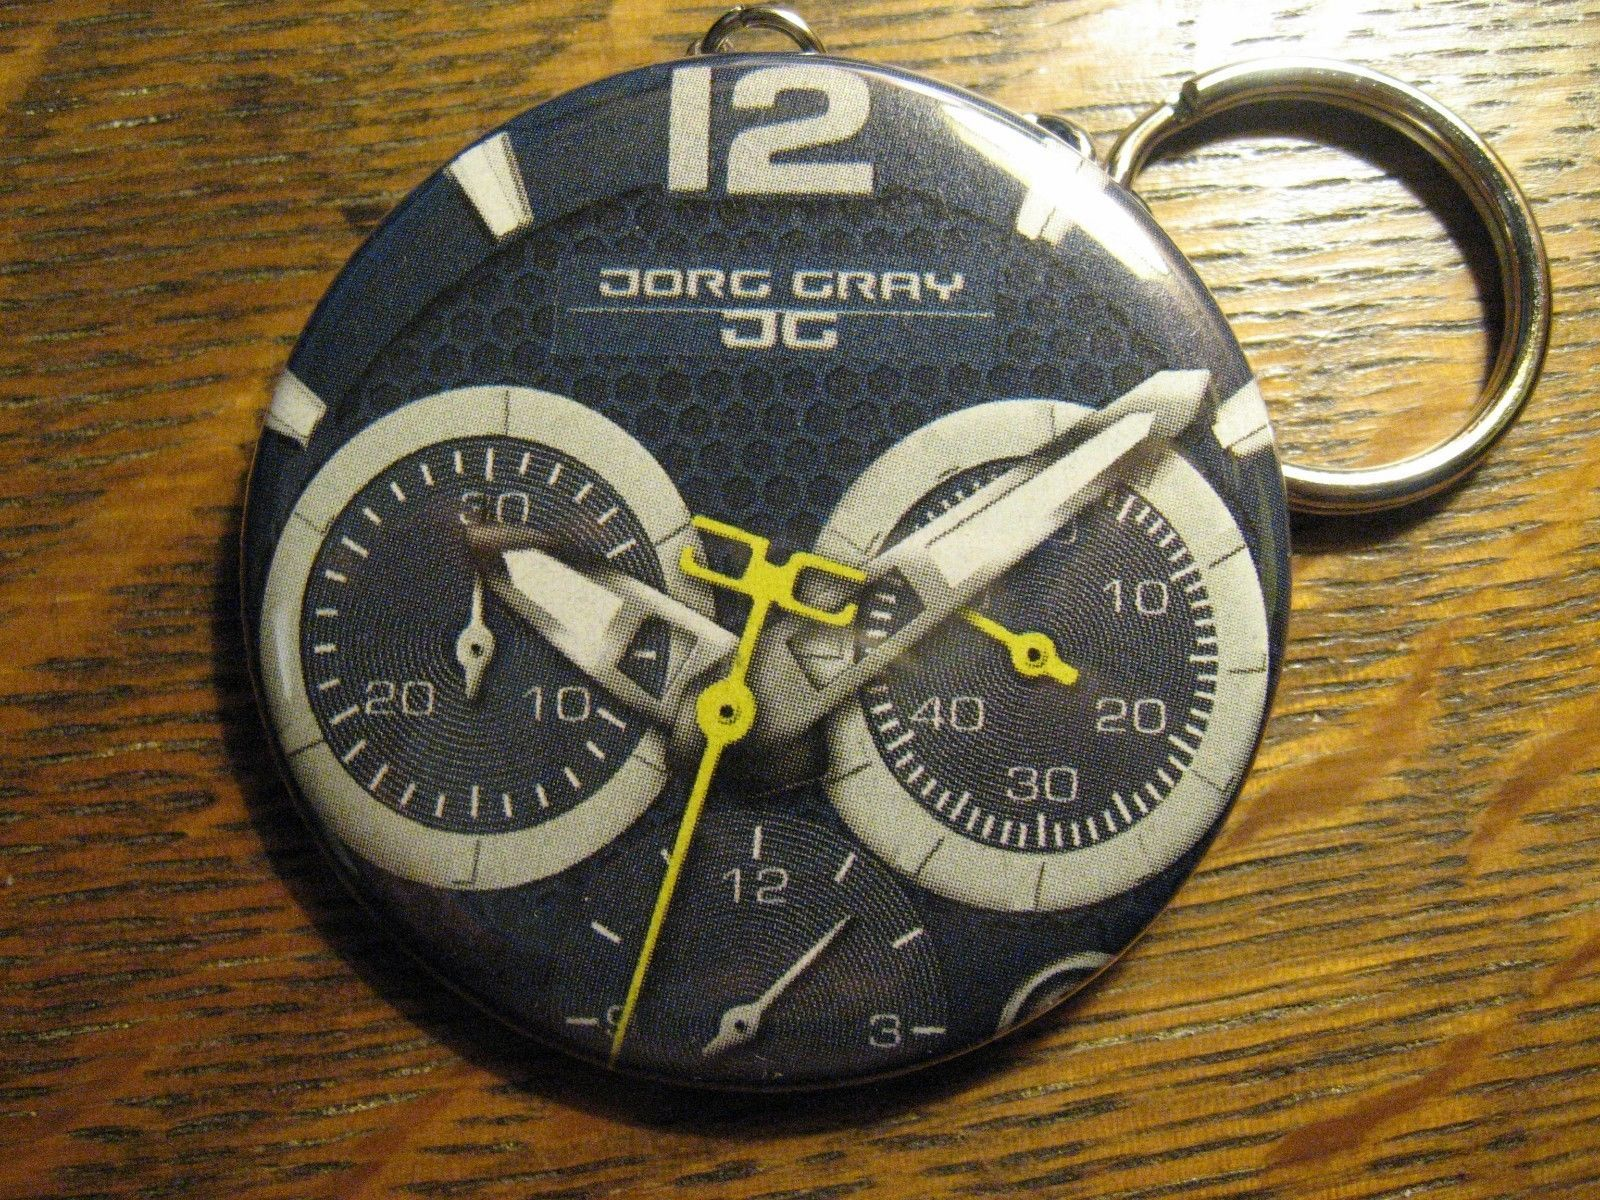 Jorg Gray Watch Keychain - Repurposed Advertisement Backpack Purse Clip Ornament